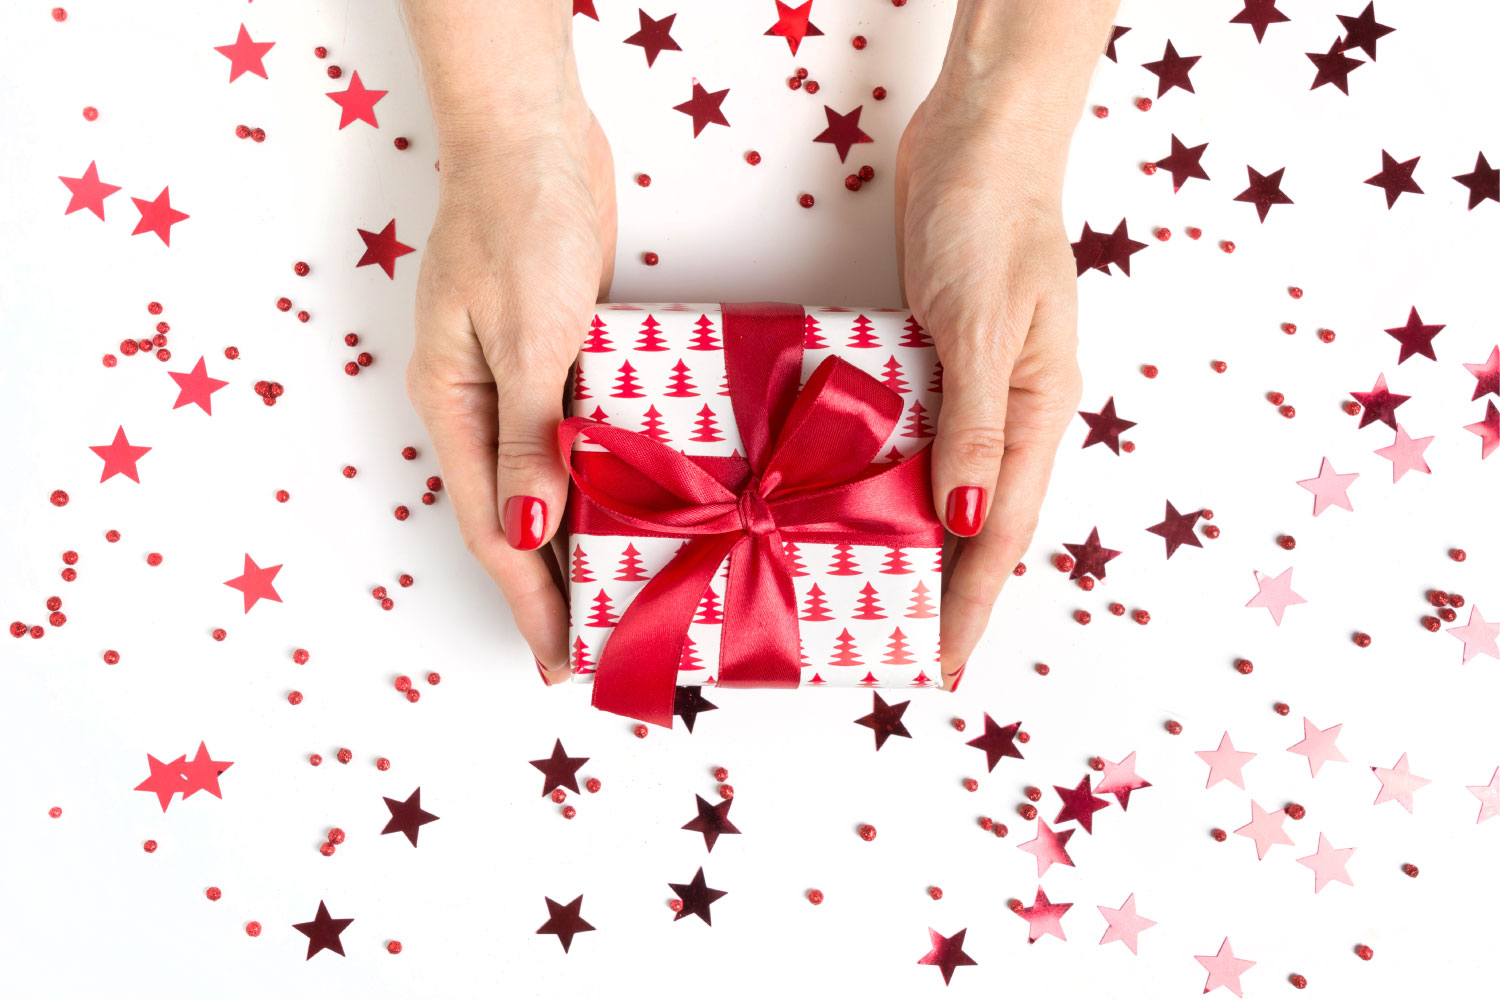 Hands holding present wrapped for Christmas